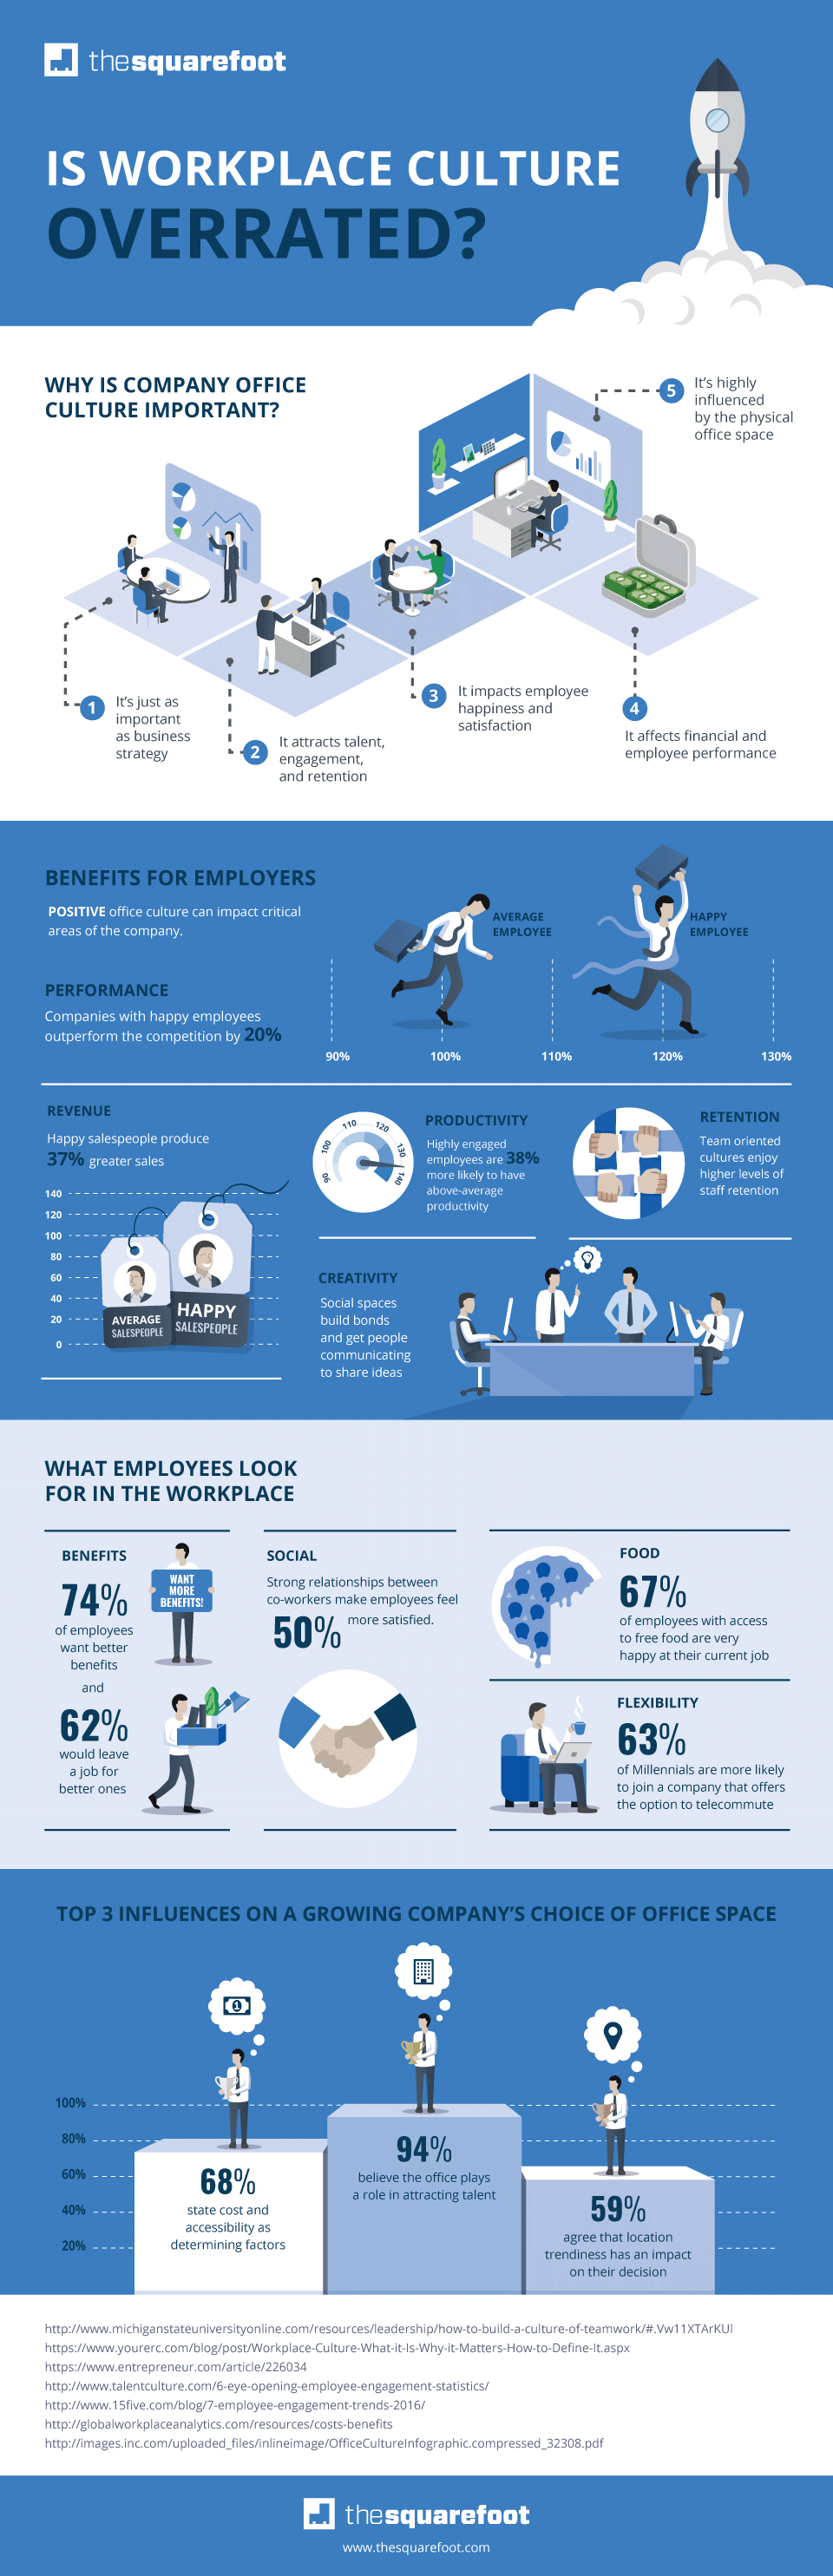 Is Workplace Culture Overrated?